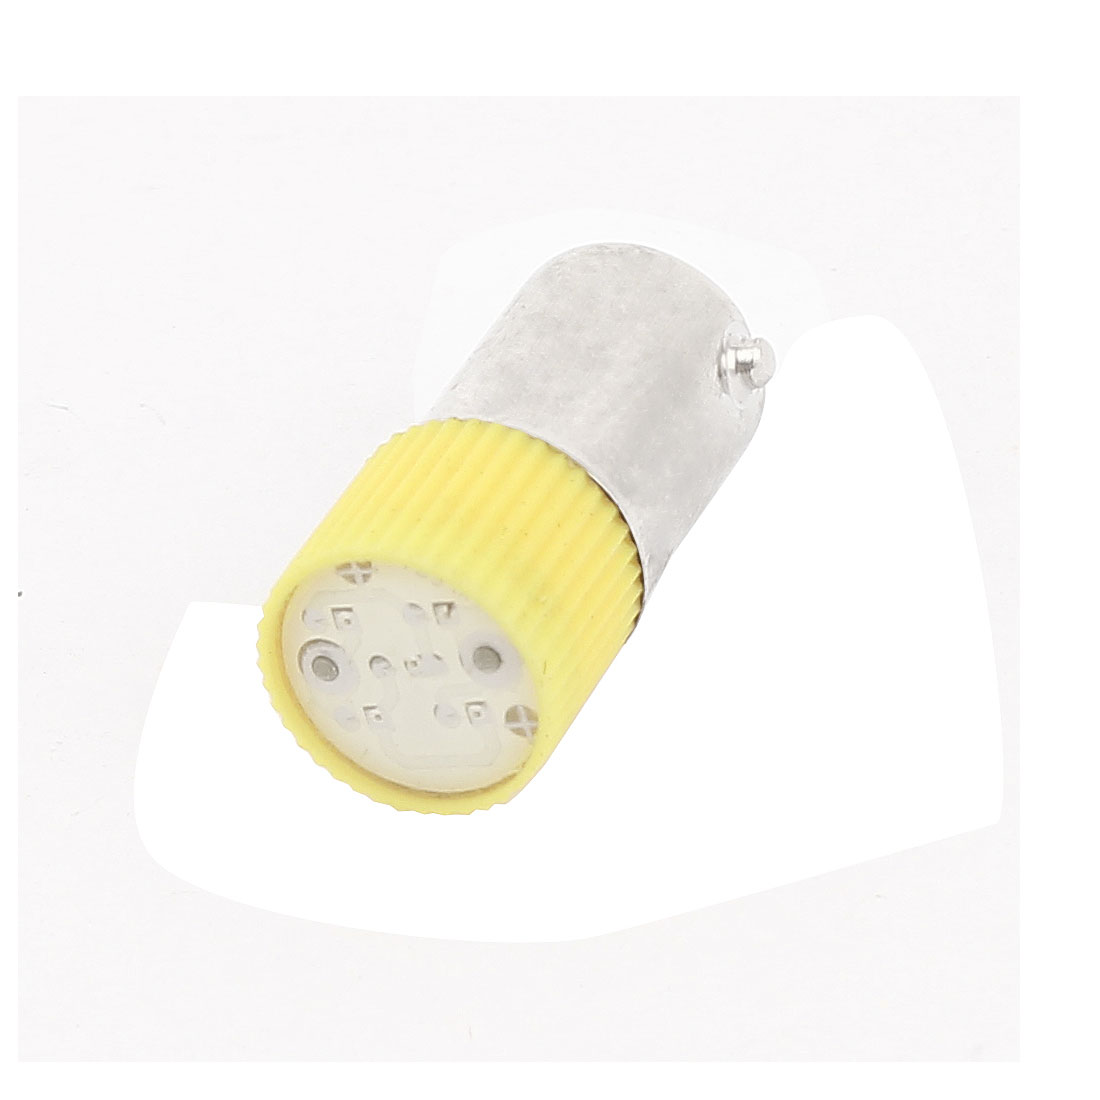 Industrial 10mm Round Head Yellow LED Bulb Signal Indicator Lamp AC 220V/240V 3A